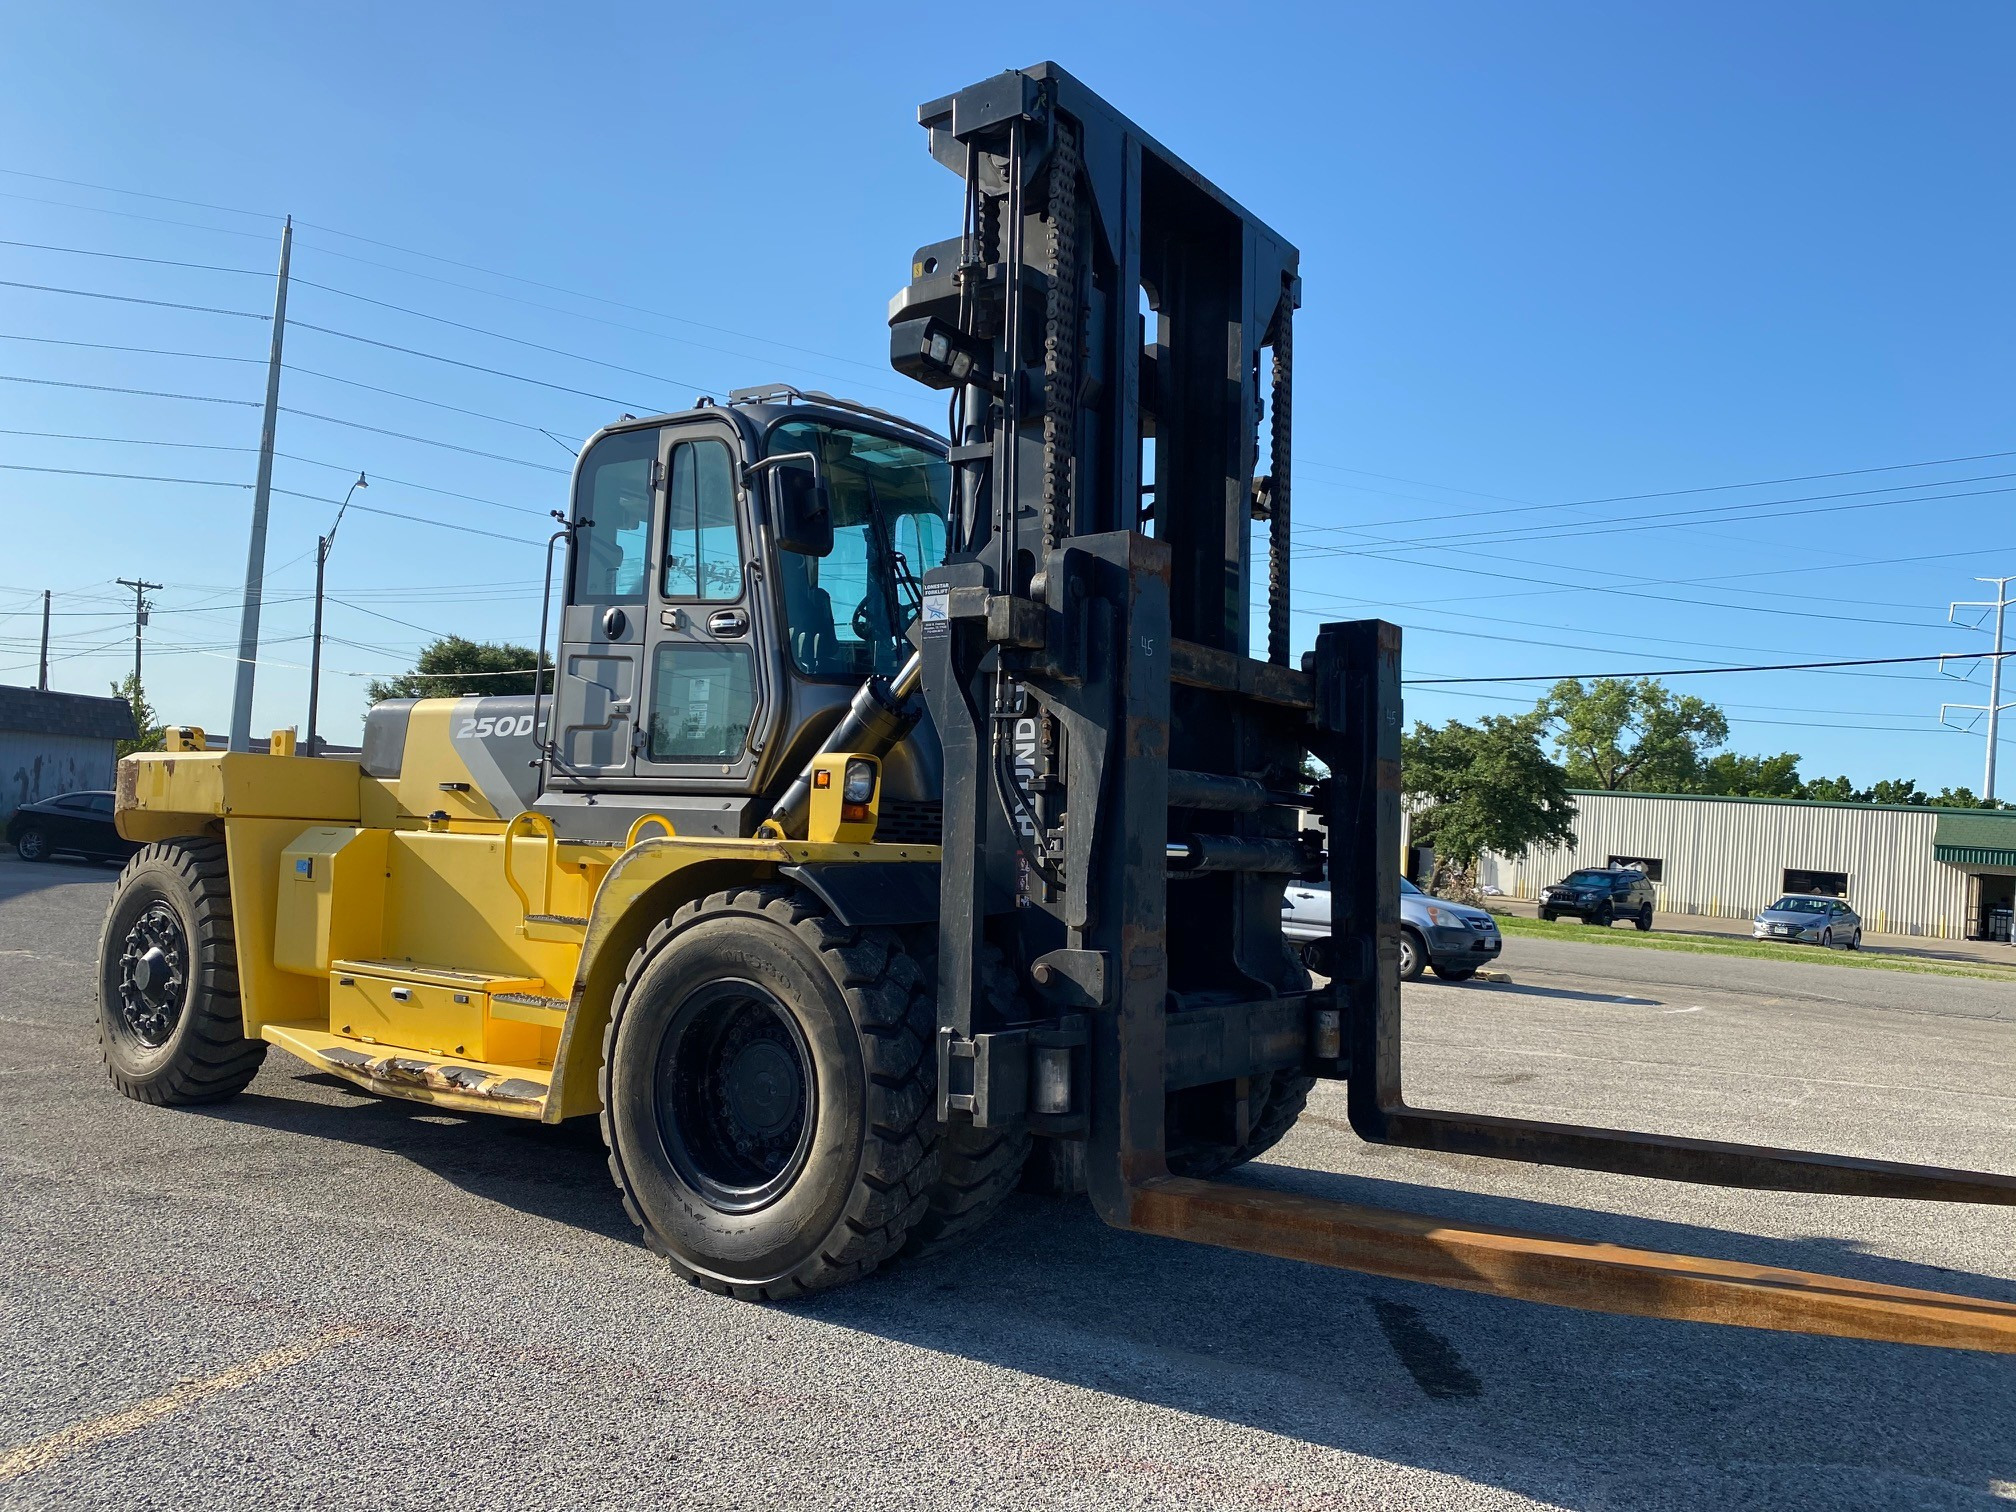 Used, 2016, Hyundai, 250D-9, Forklifts / Lift Trucks